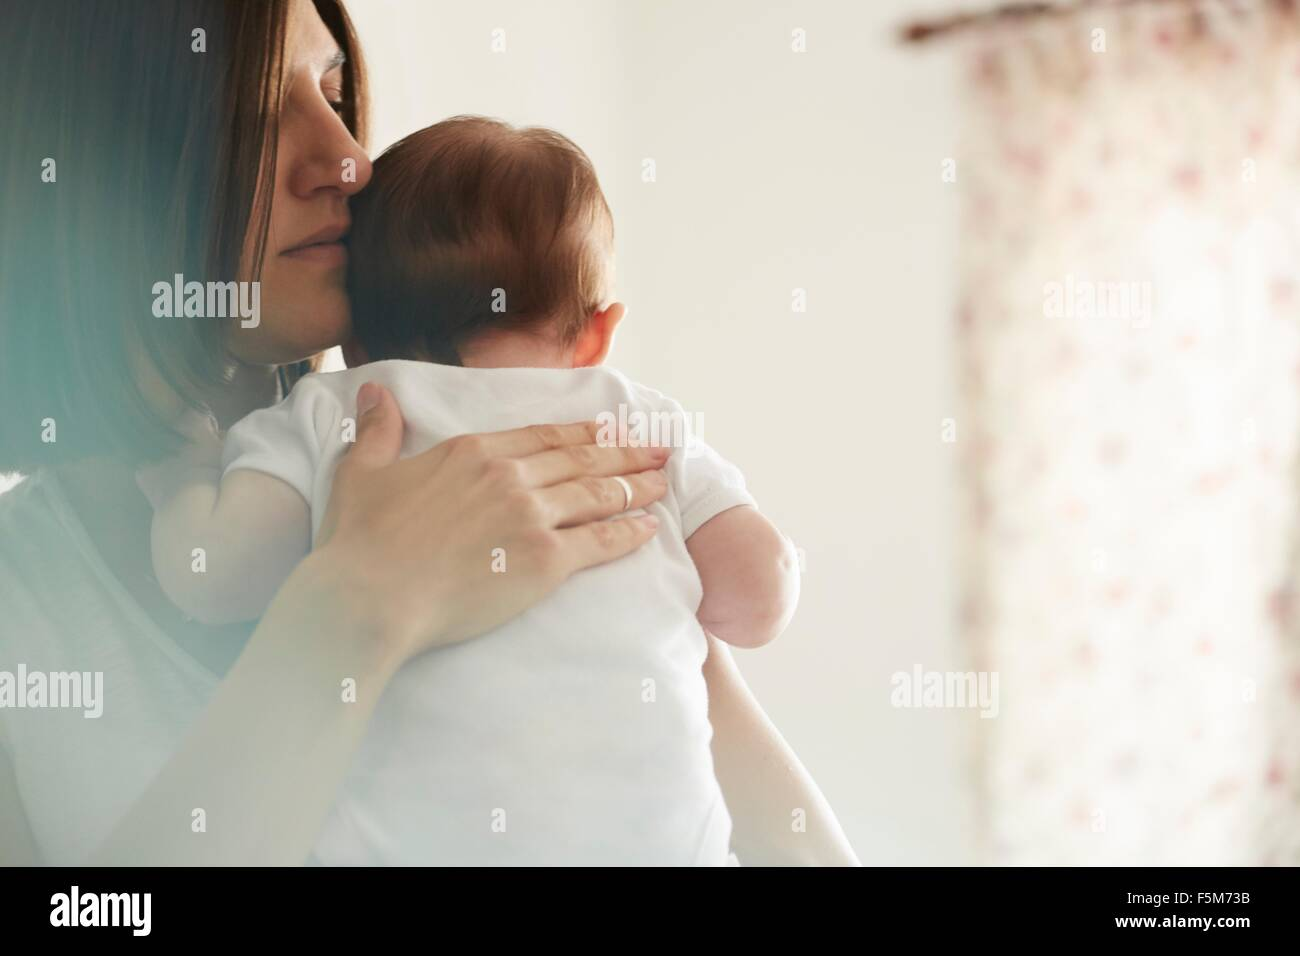 Mother carrying baby in bedroom Stock Photo